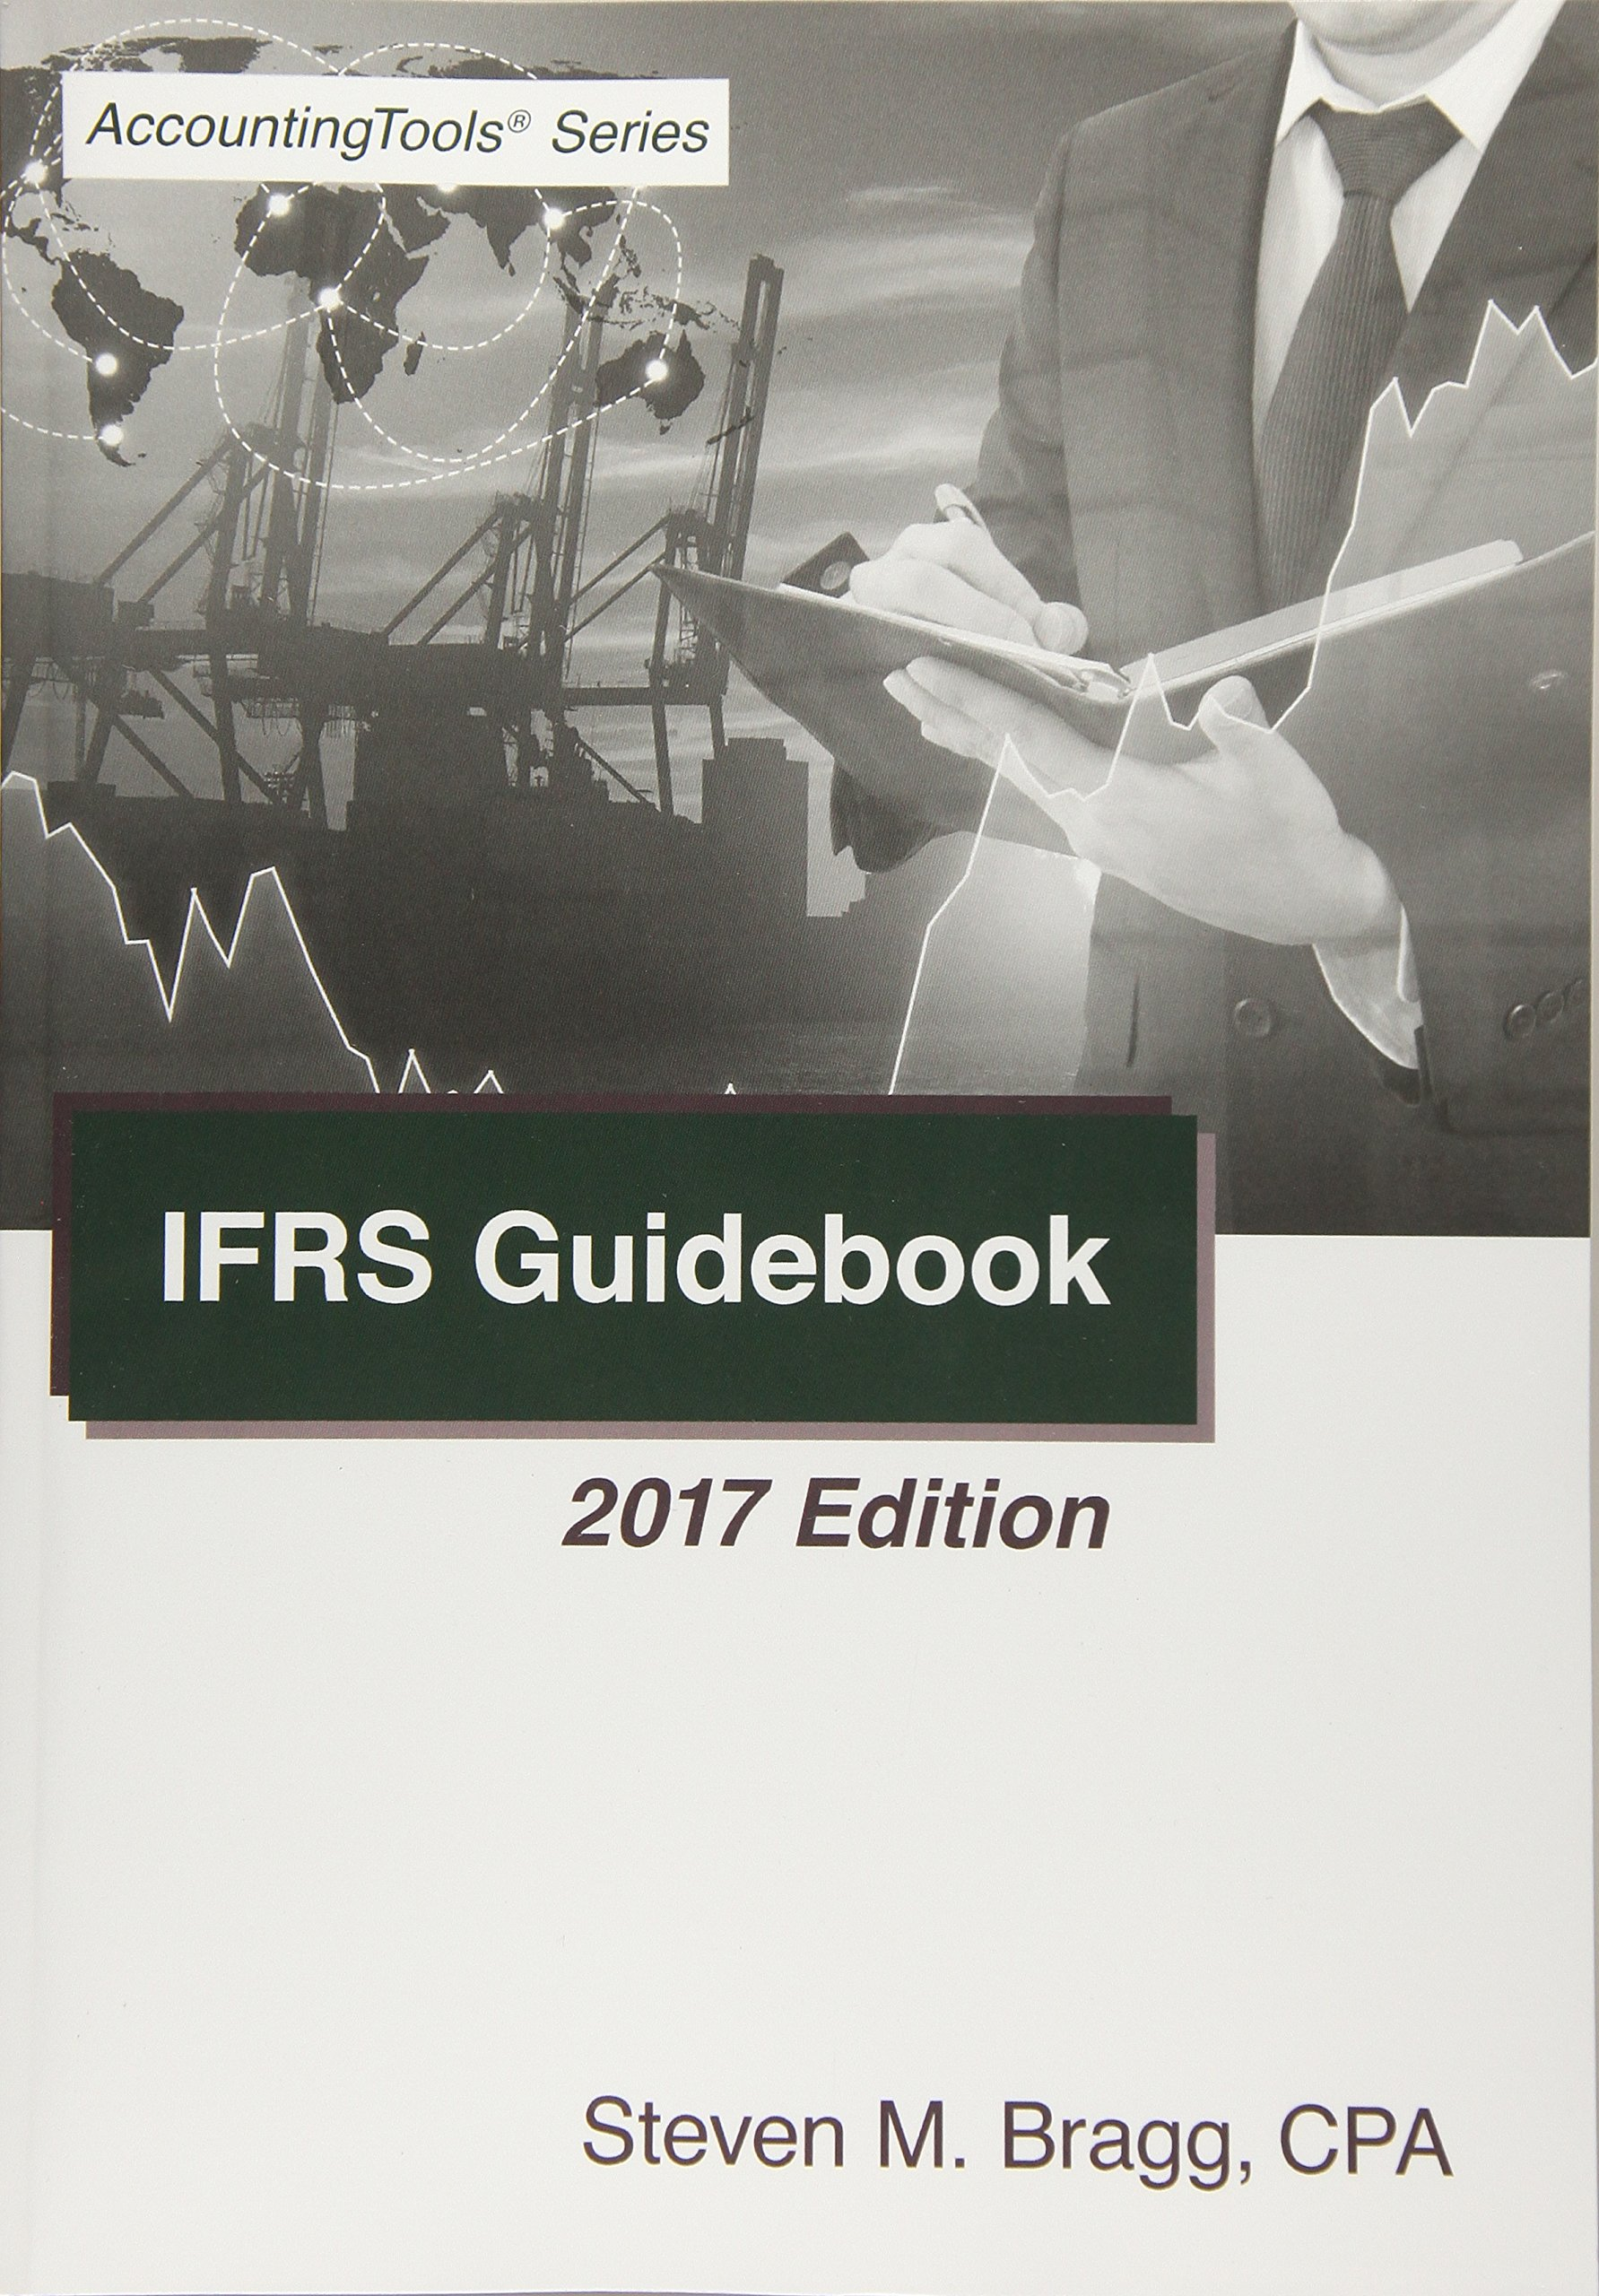 Buy ifrs guidebook 2017 edition book online at low prices in india buy ifrs guidebook 2017 edition book online at low prices in india ifrs guidebook 2017 edition reviews ratings amazon fandeluxe Images